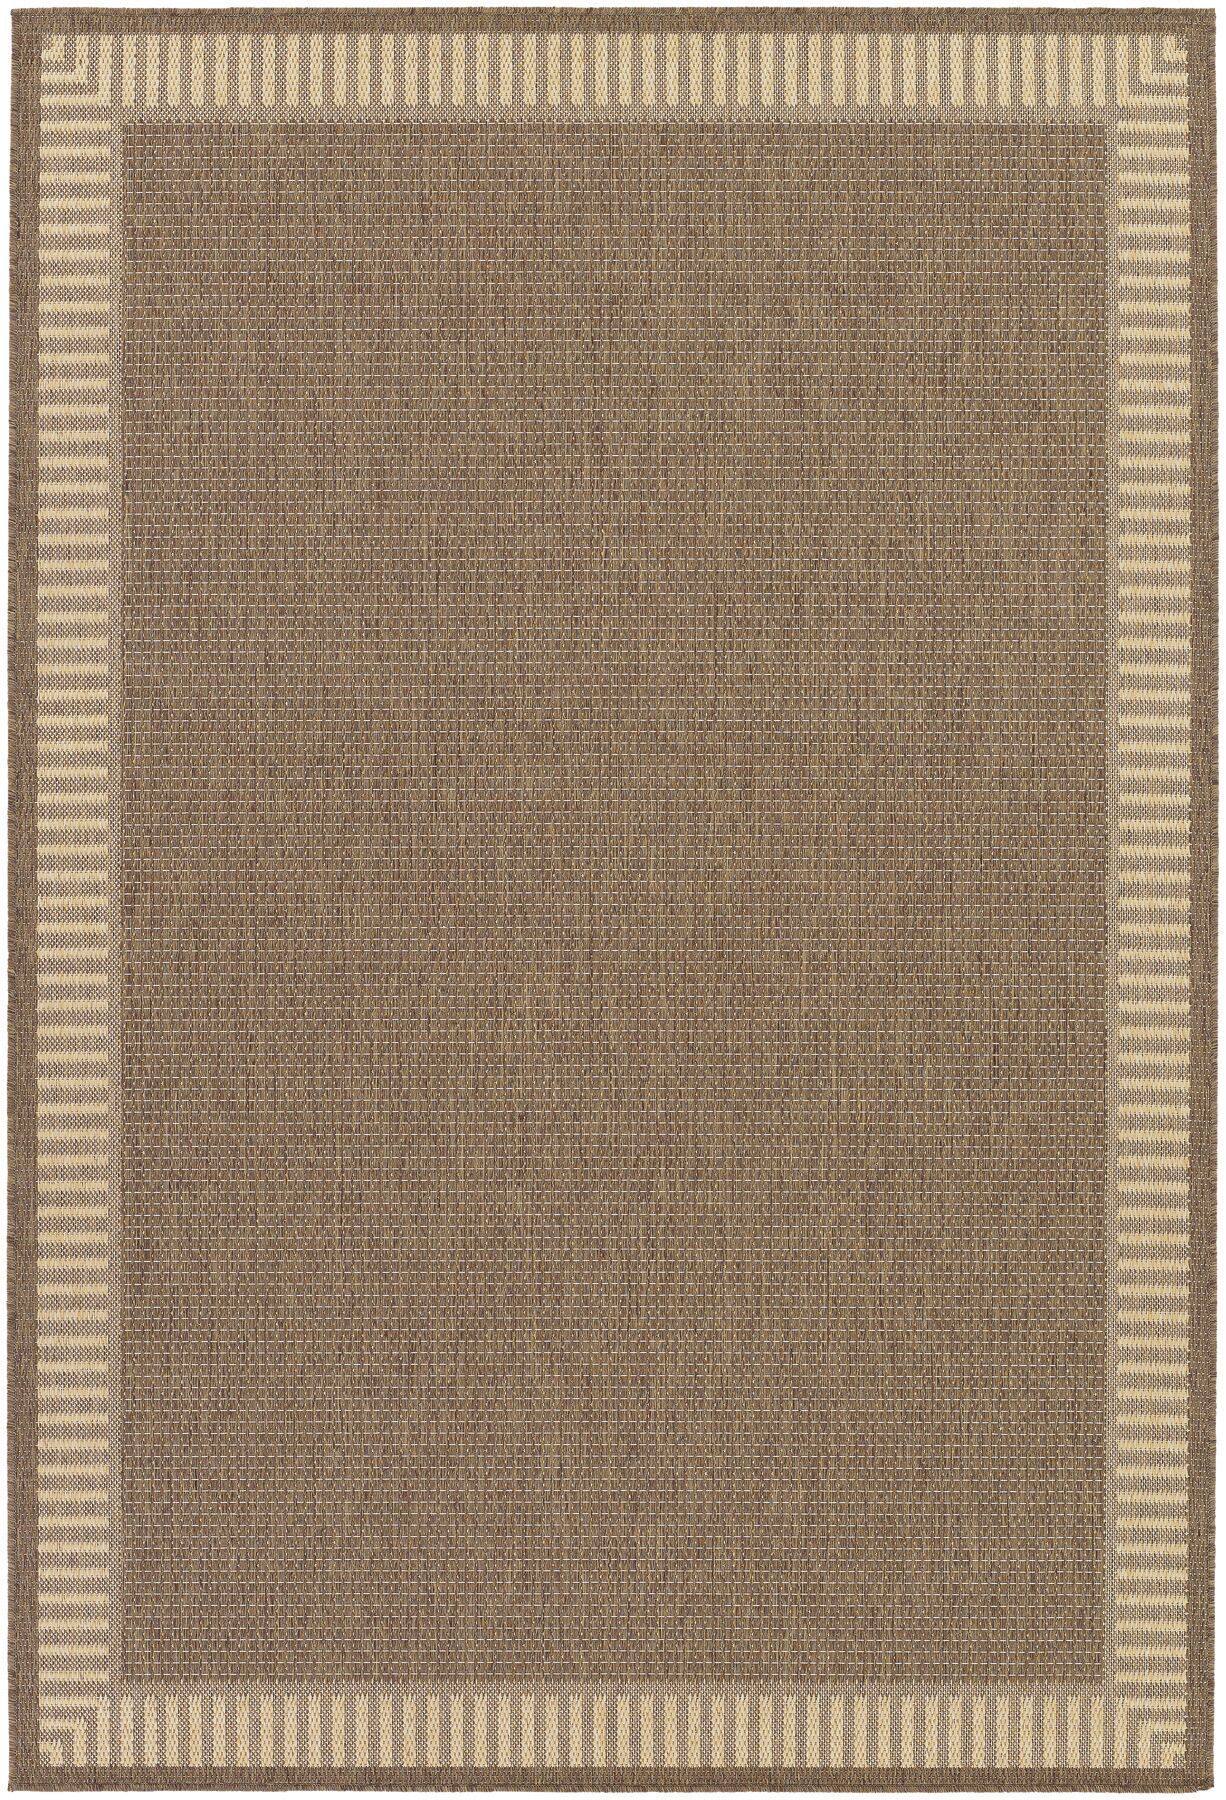 Westlund Wicker Stitch Cocoa/Natural Indoor/Outdoor Area Rug Rug Size: Square 7'6